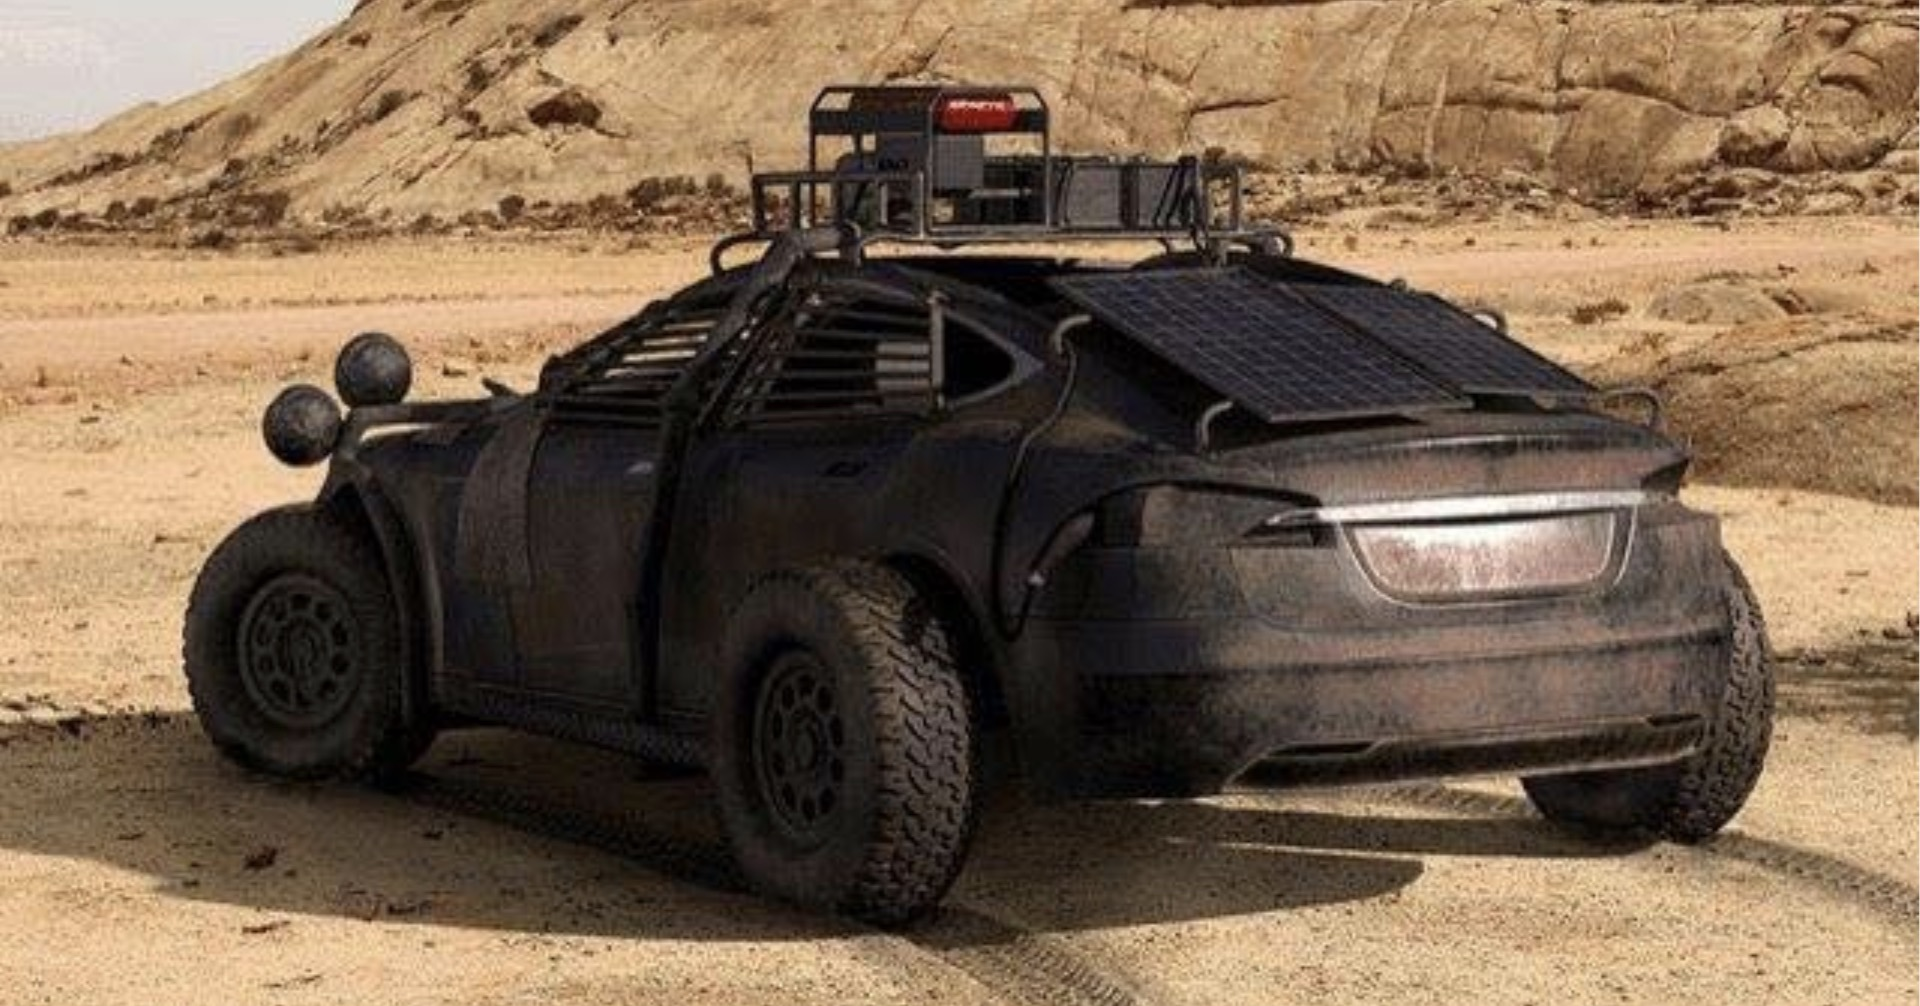 elon musk hints at what his  u0026 39 cyborg dragon tesla u0026 39  is actually going to be